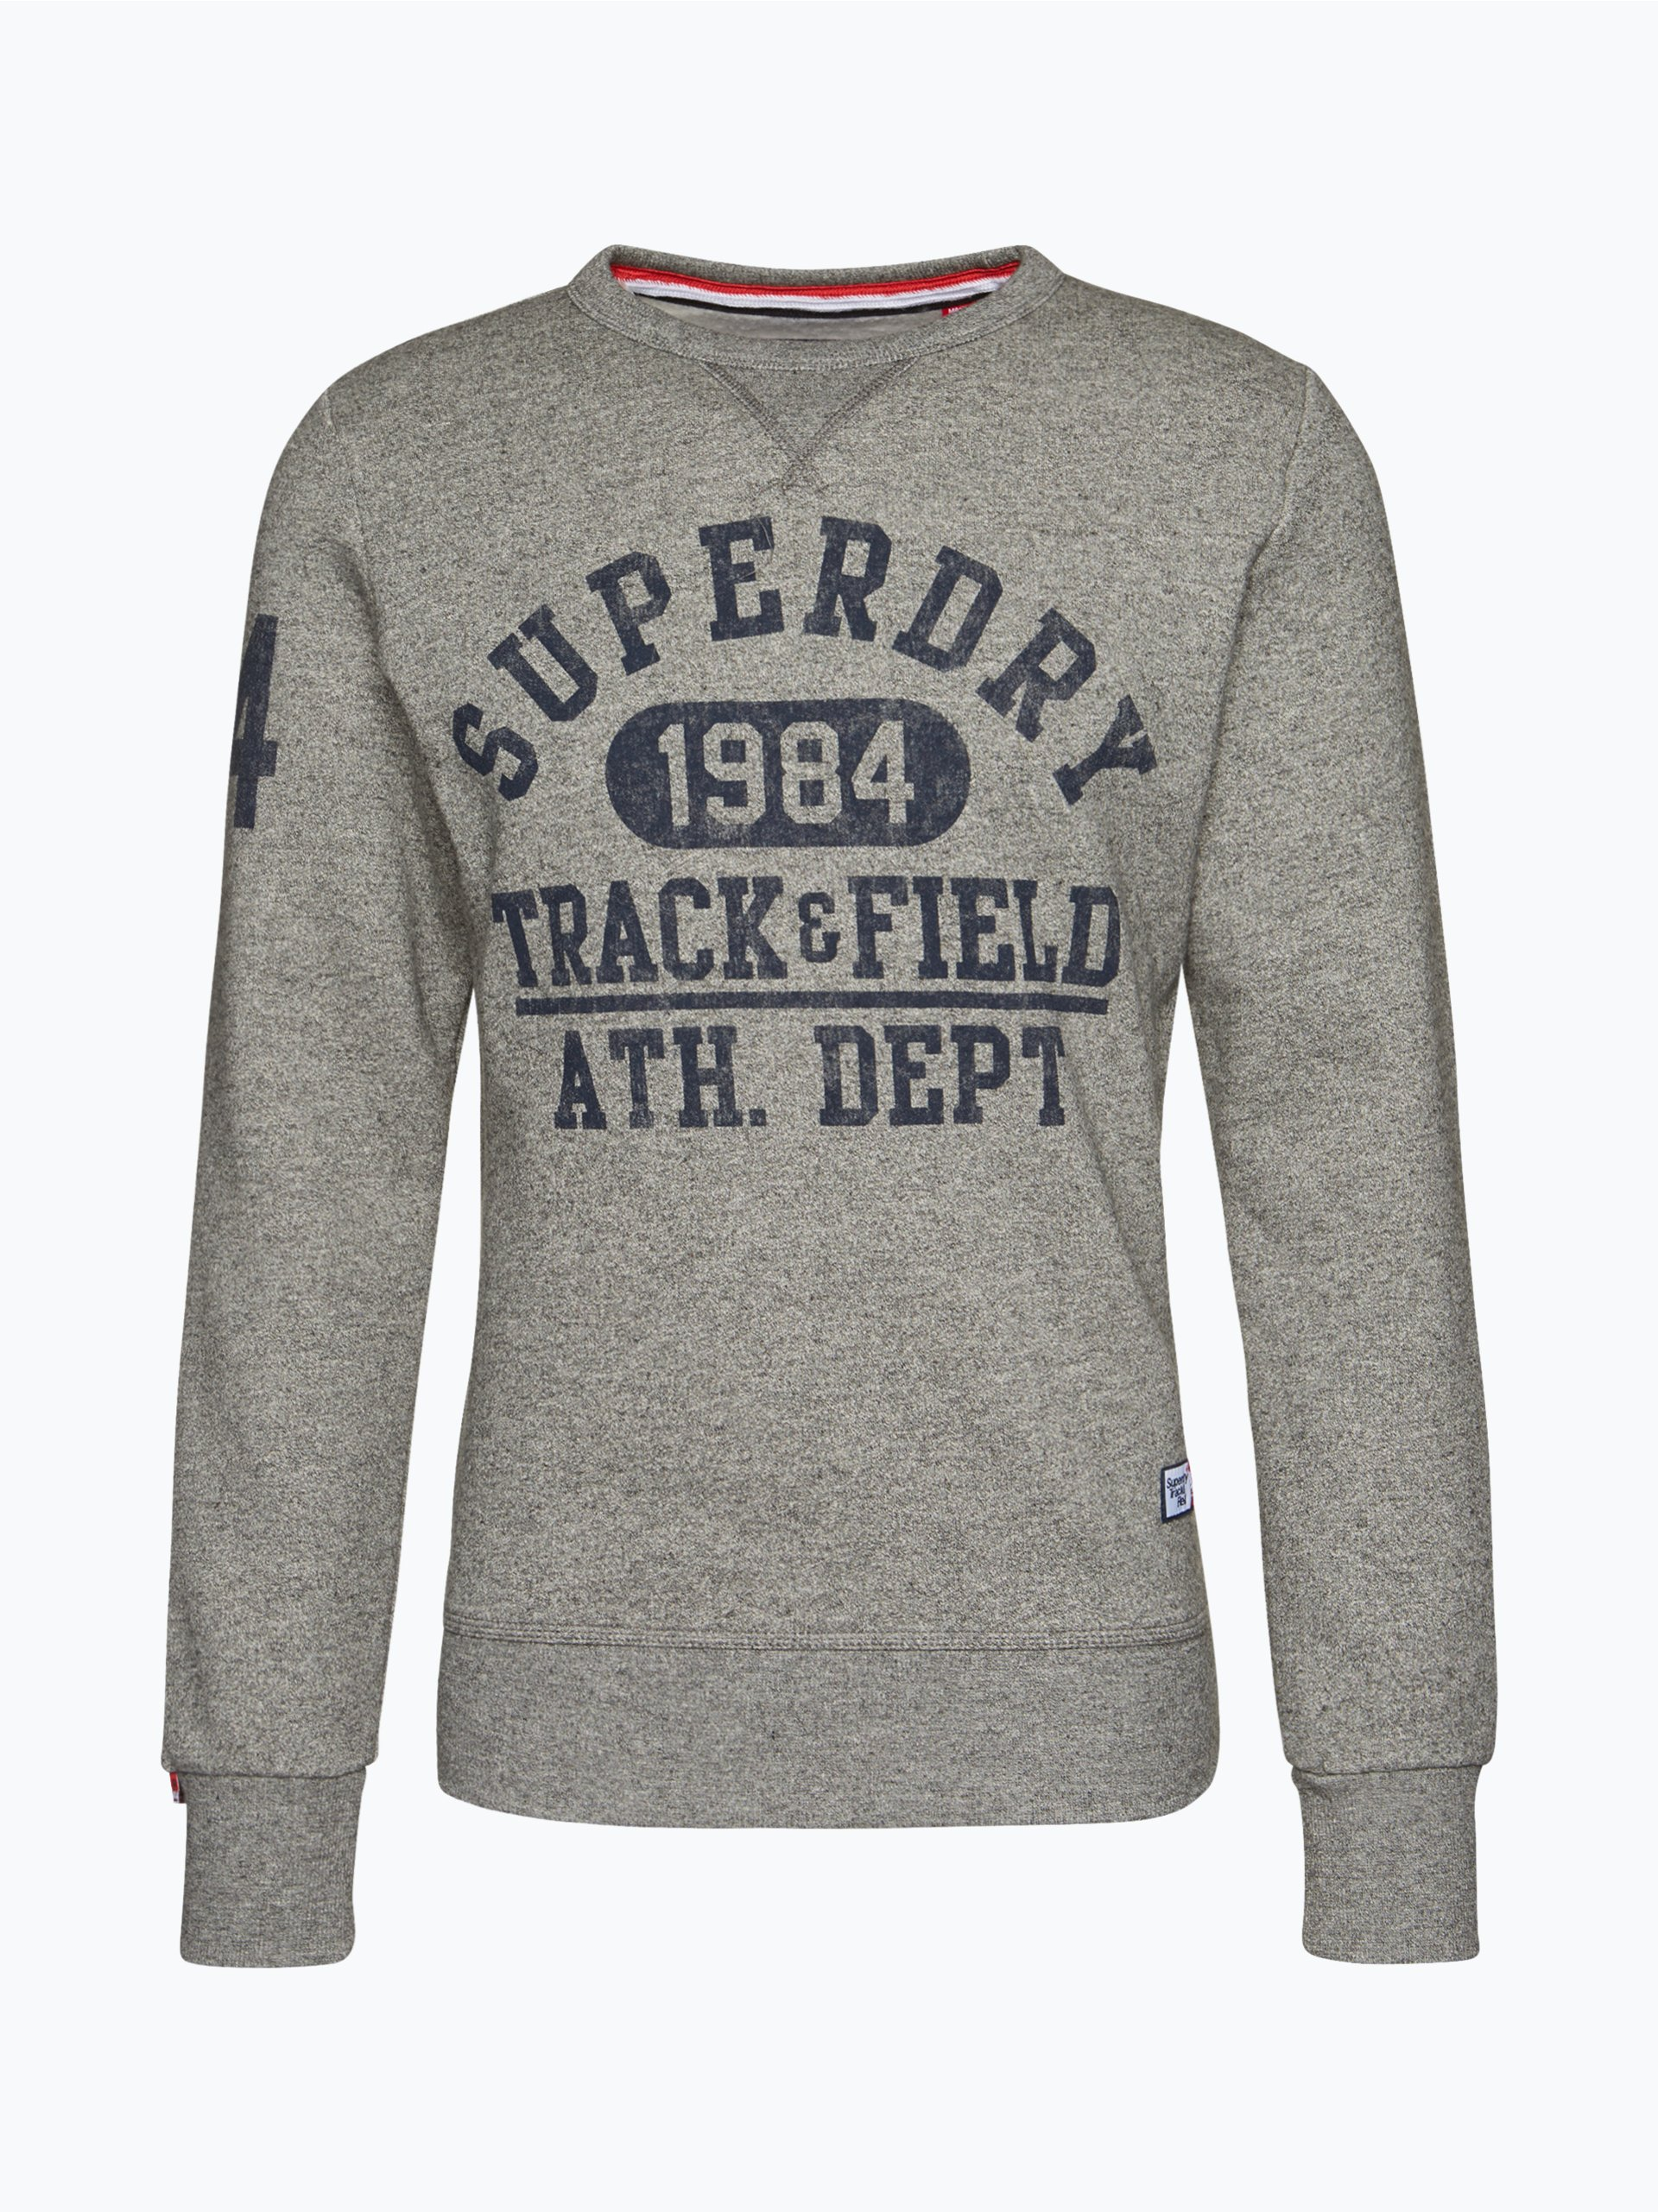 superdry herren sweatshirt grau uni online kaufen peek. Black Bedroom Furniture Sets. Home Design Ideas